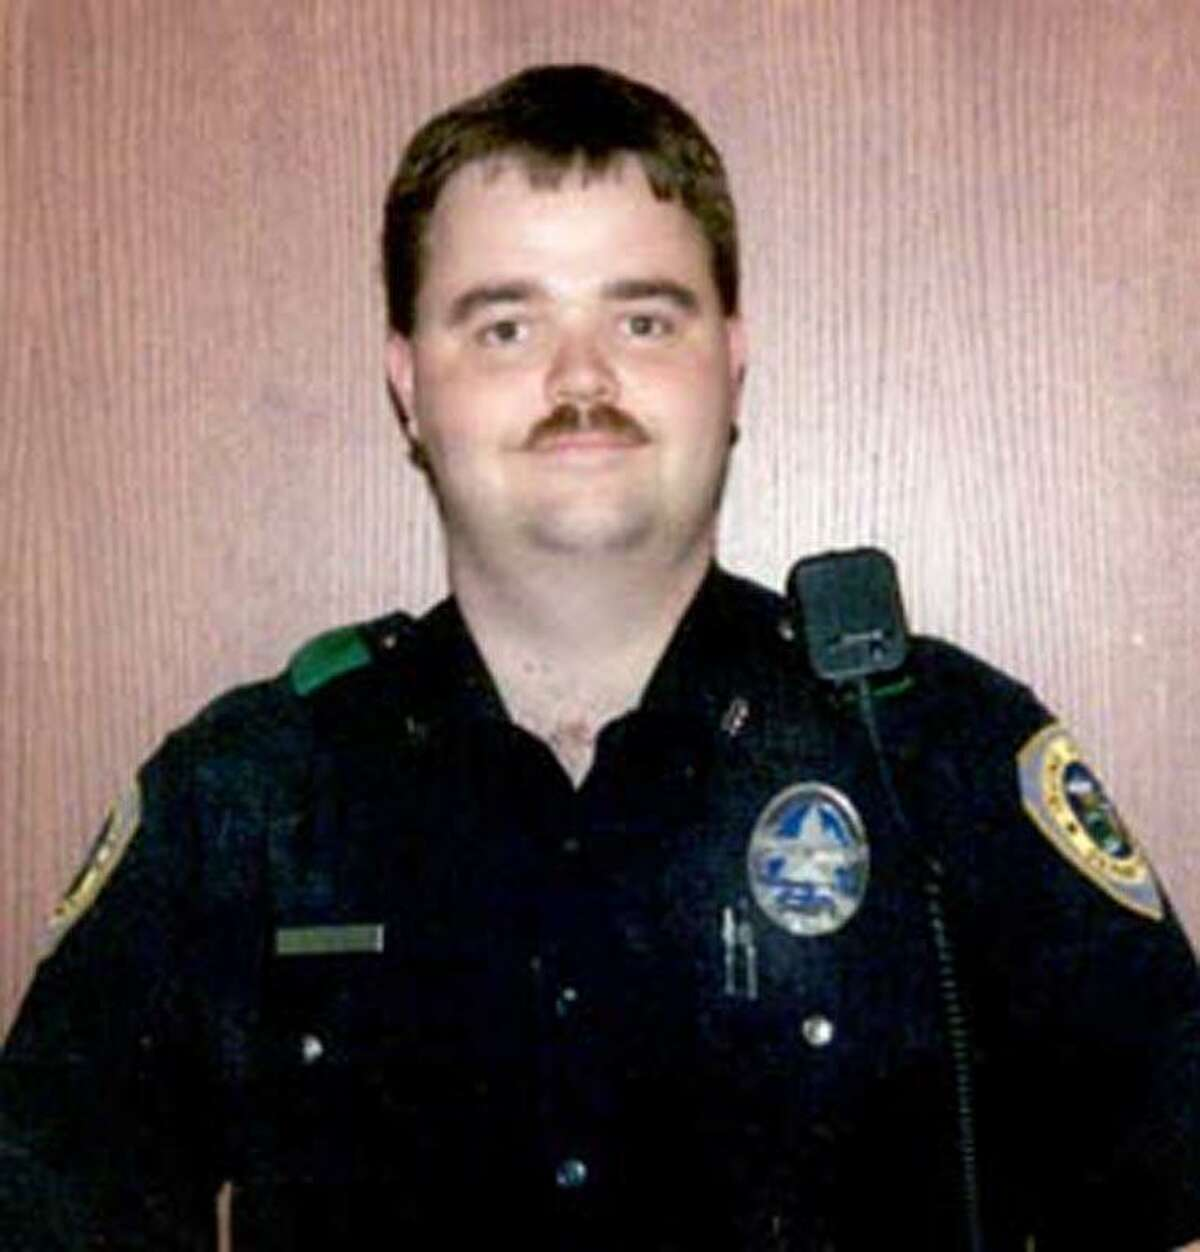 Irving Police officer Aubrey Hawkins, shown in this undated photo, was shot and killed as he responded to a robbery at a sporting goods store that had just closed on Christmas Eve, Dec. 24, 2000.